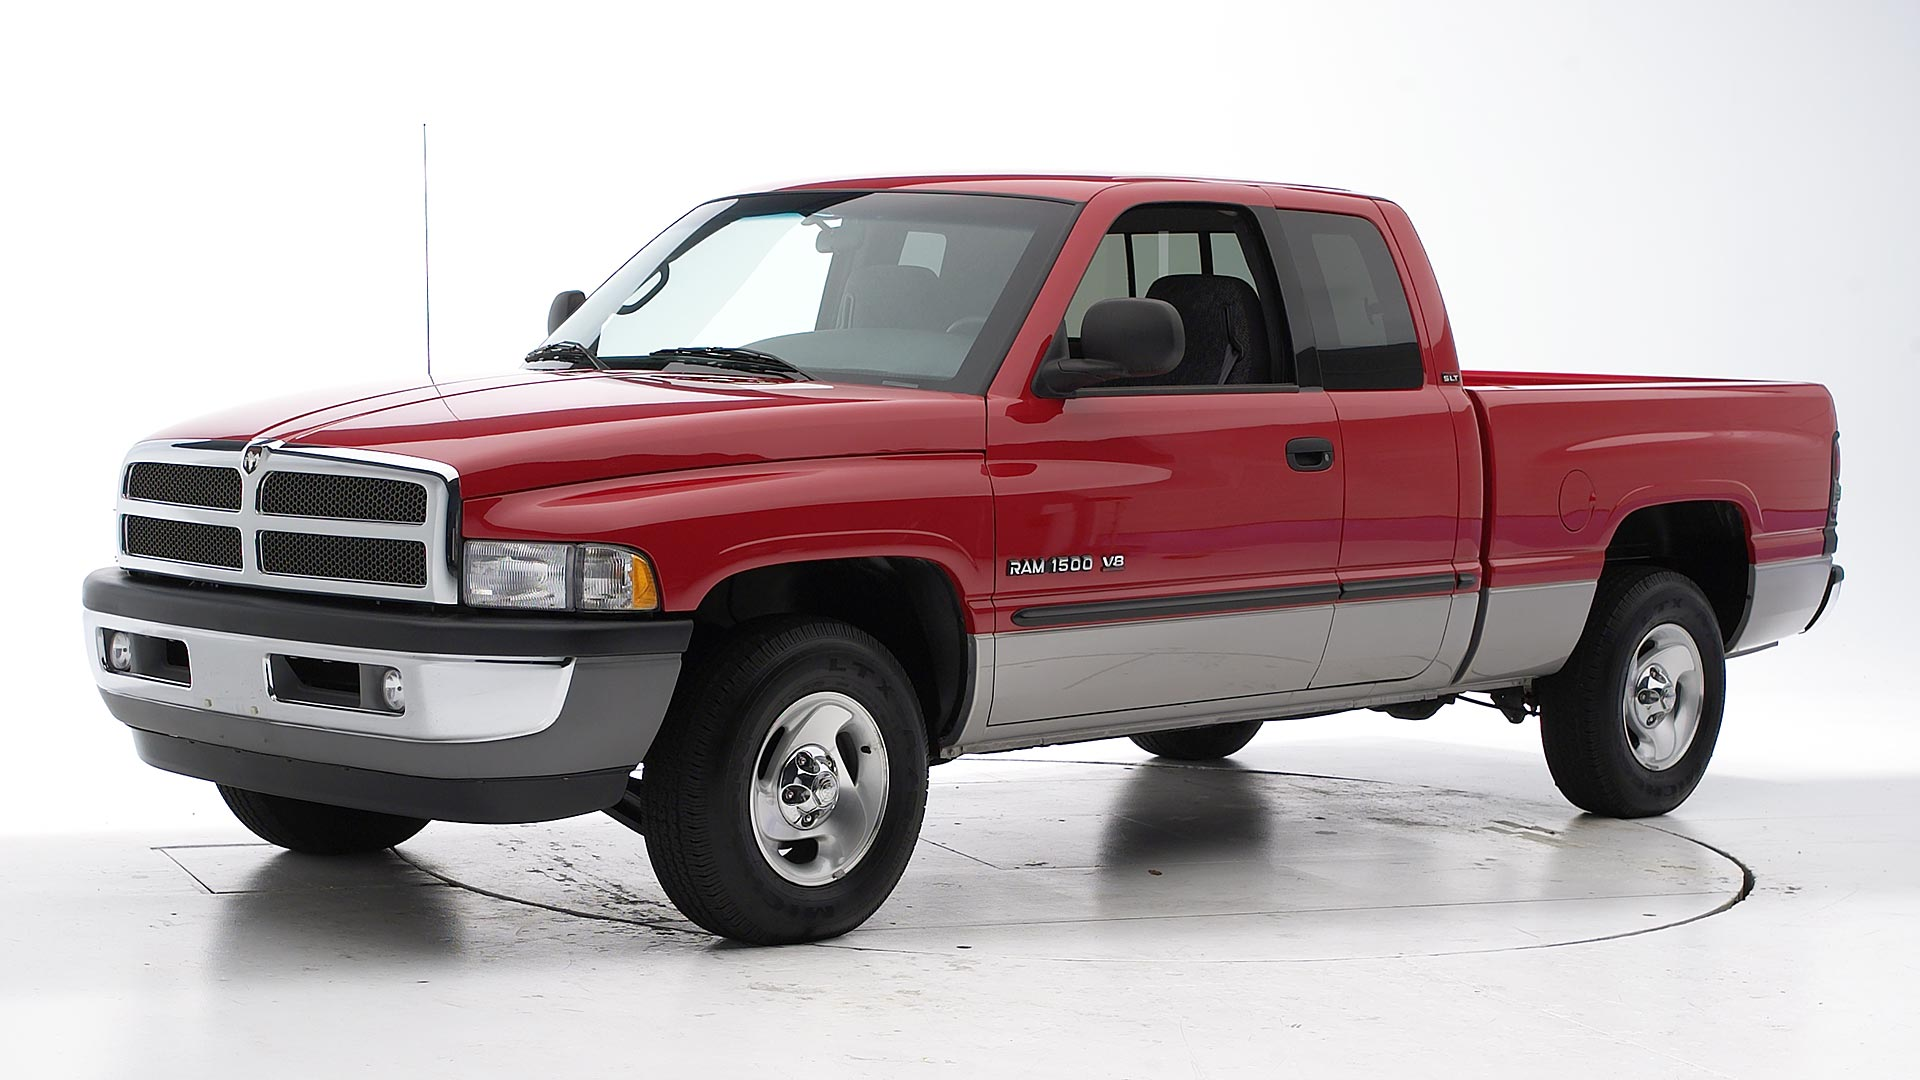 2001 Dodge Ram 1500 Extended cab pickup